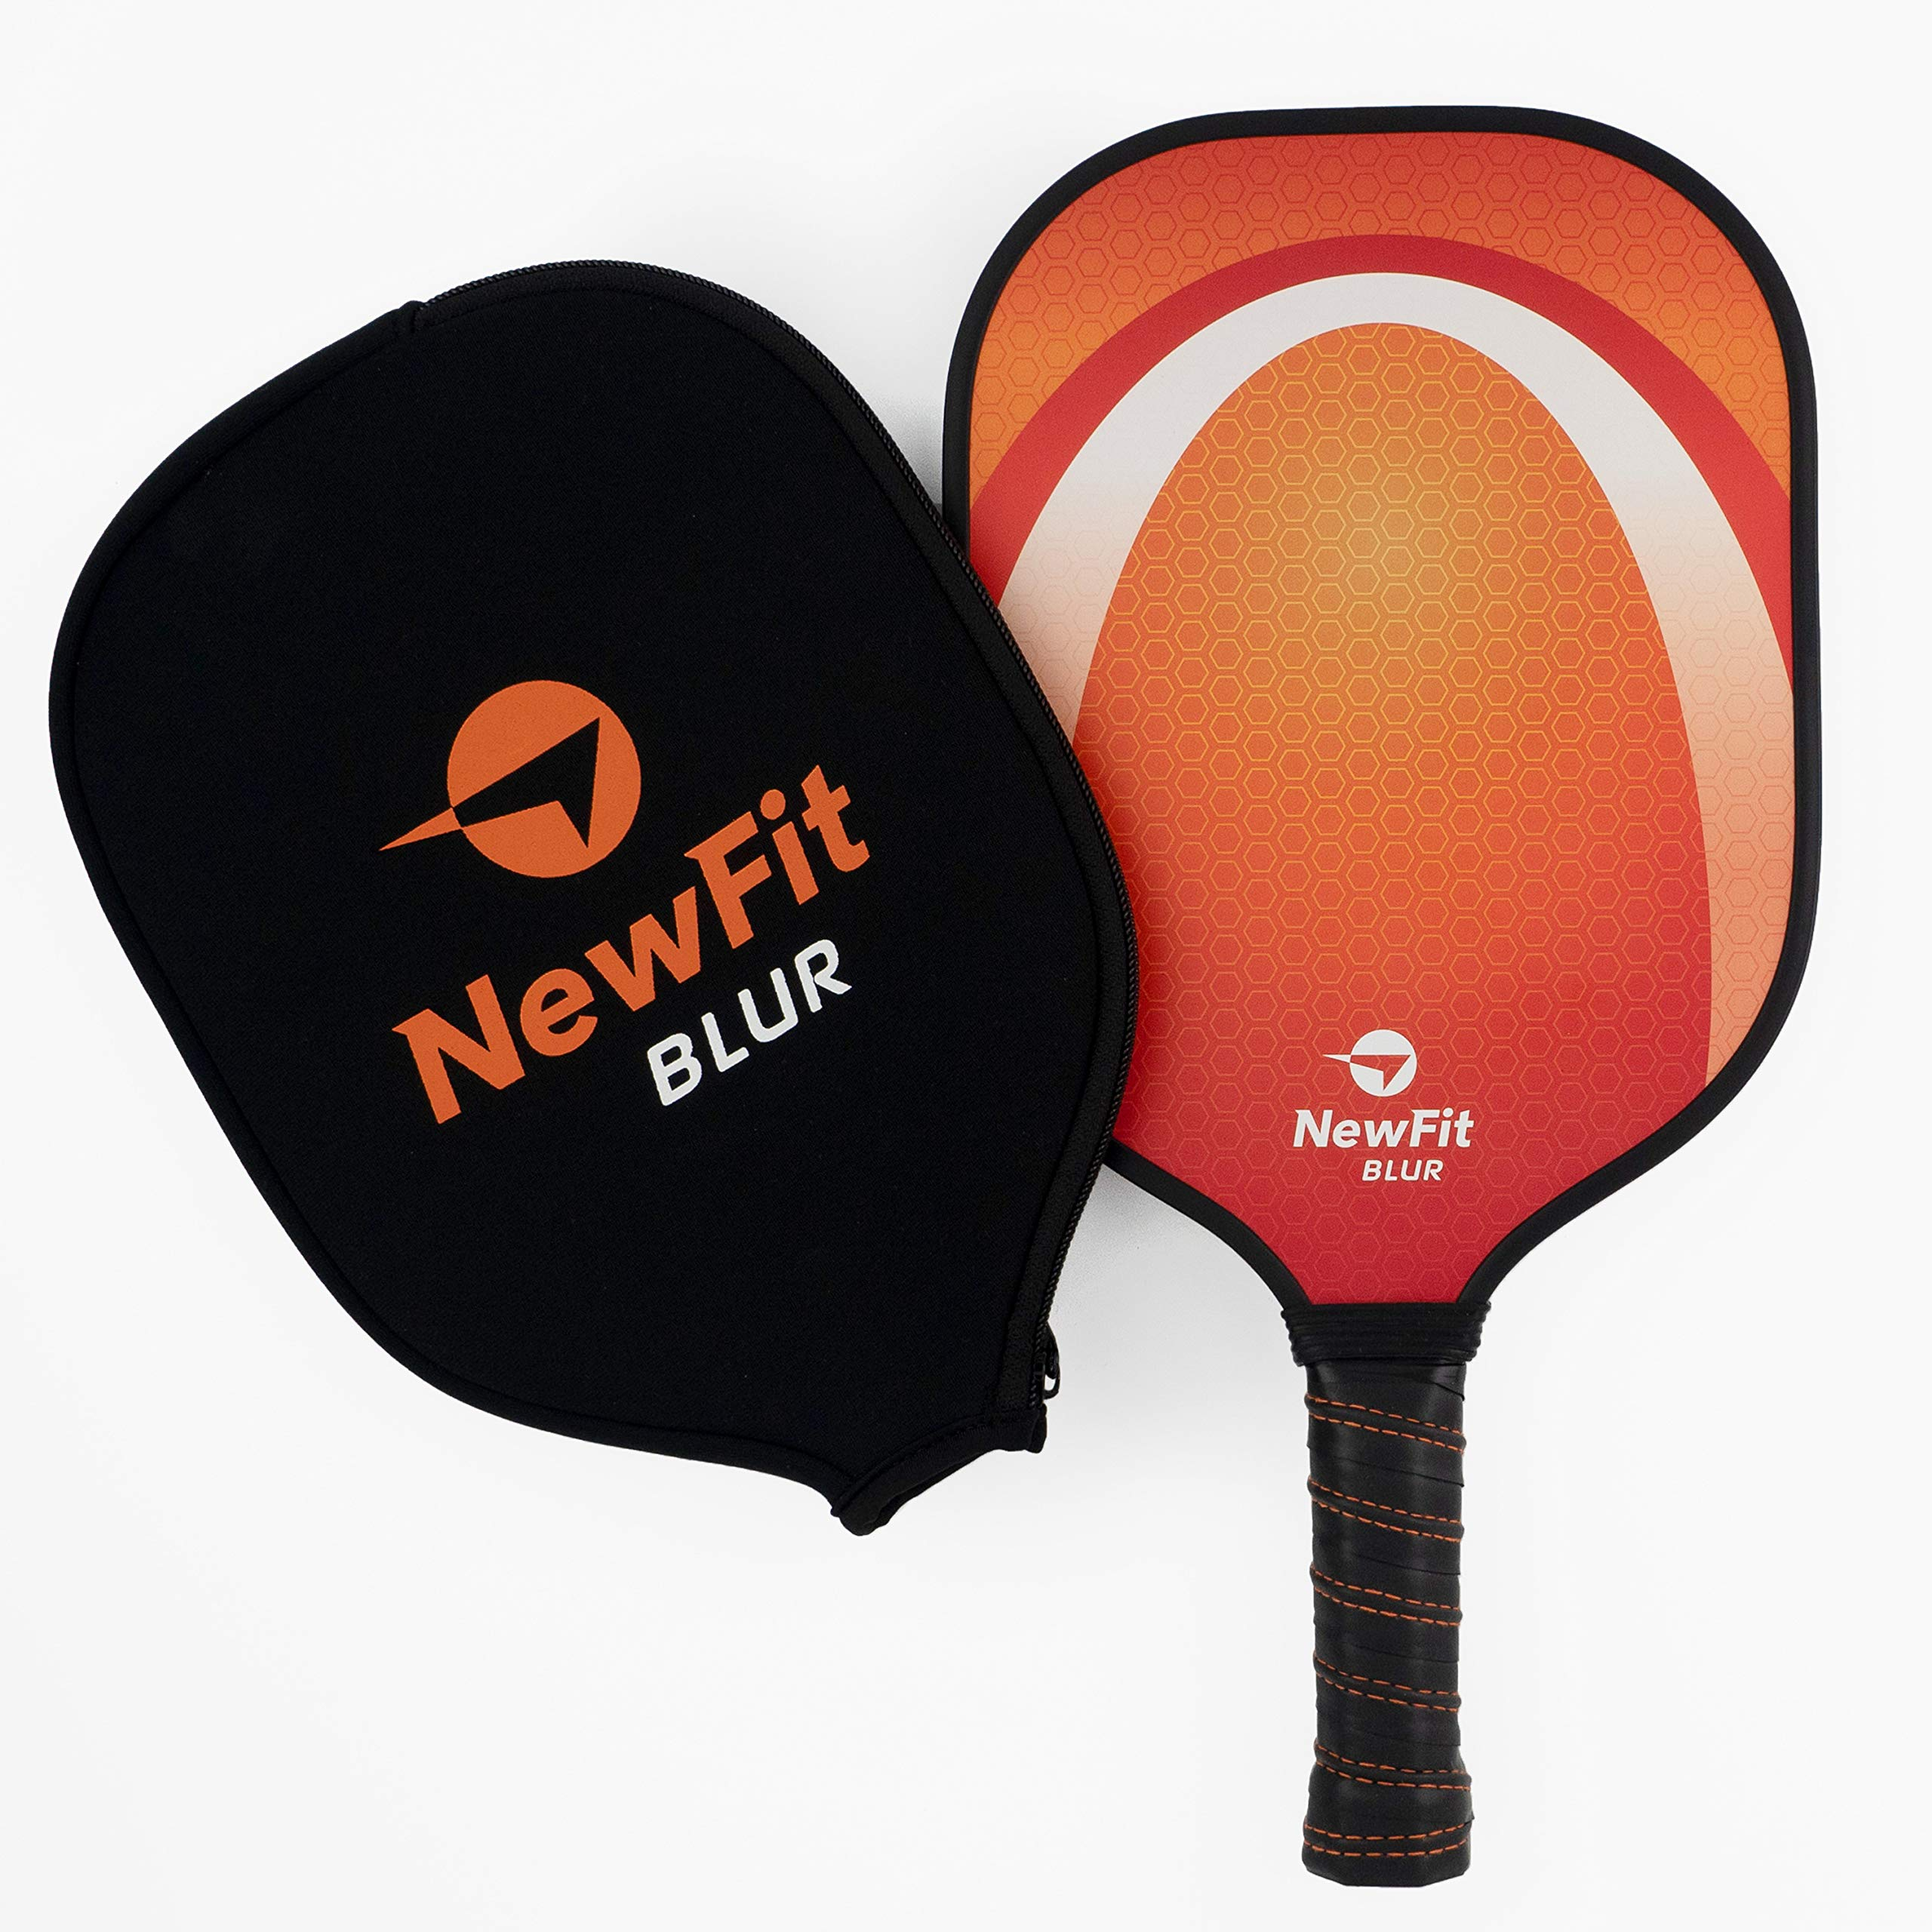 NewFit Blur Pickleball Paddle - USAPA Approved - Graphite Face & Polymer Core for a Quiet and Light Racket (Orange Single) by NewFit Sports